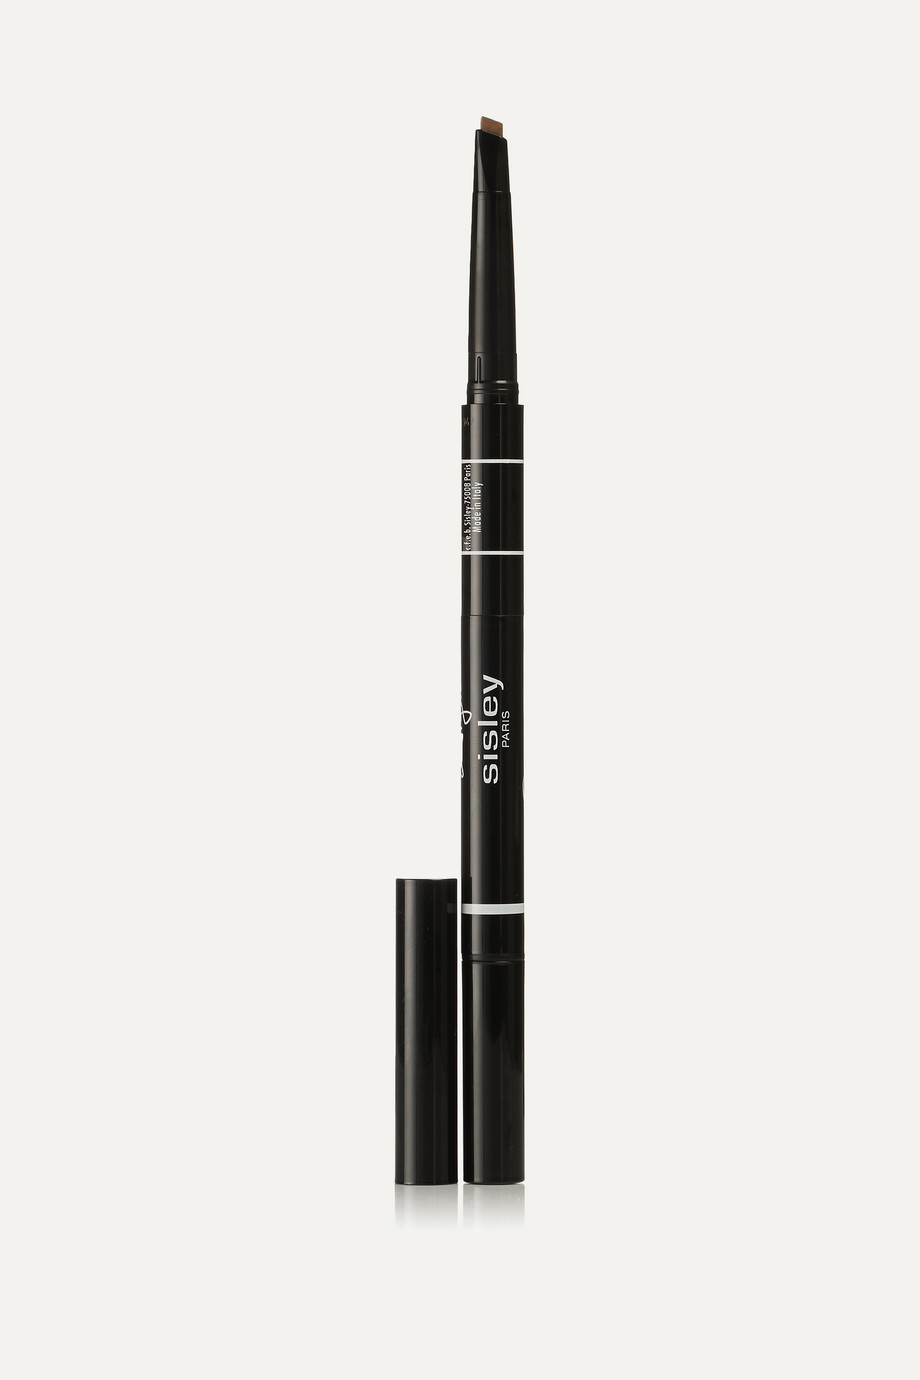 Sisley Phyto-Sourcils Design 3-in-1 Architect Pencil - 2 Chatain